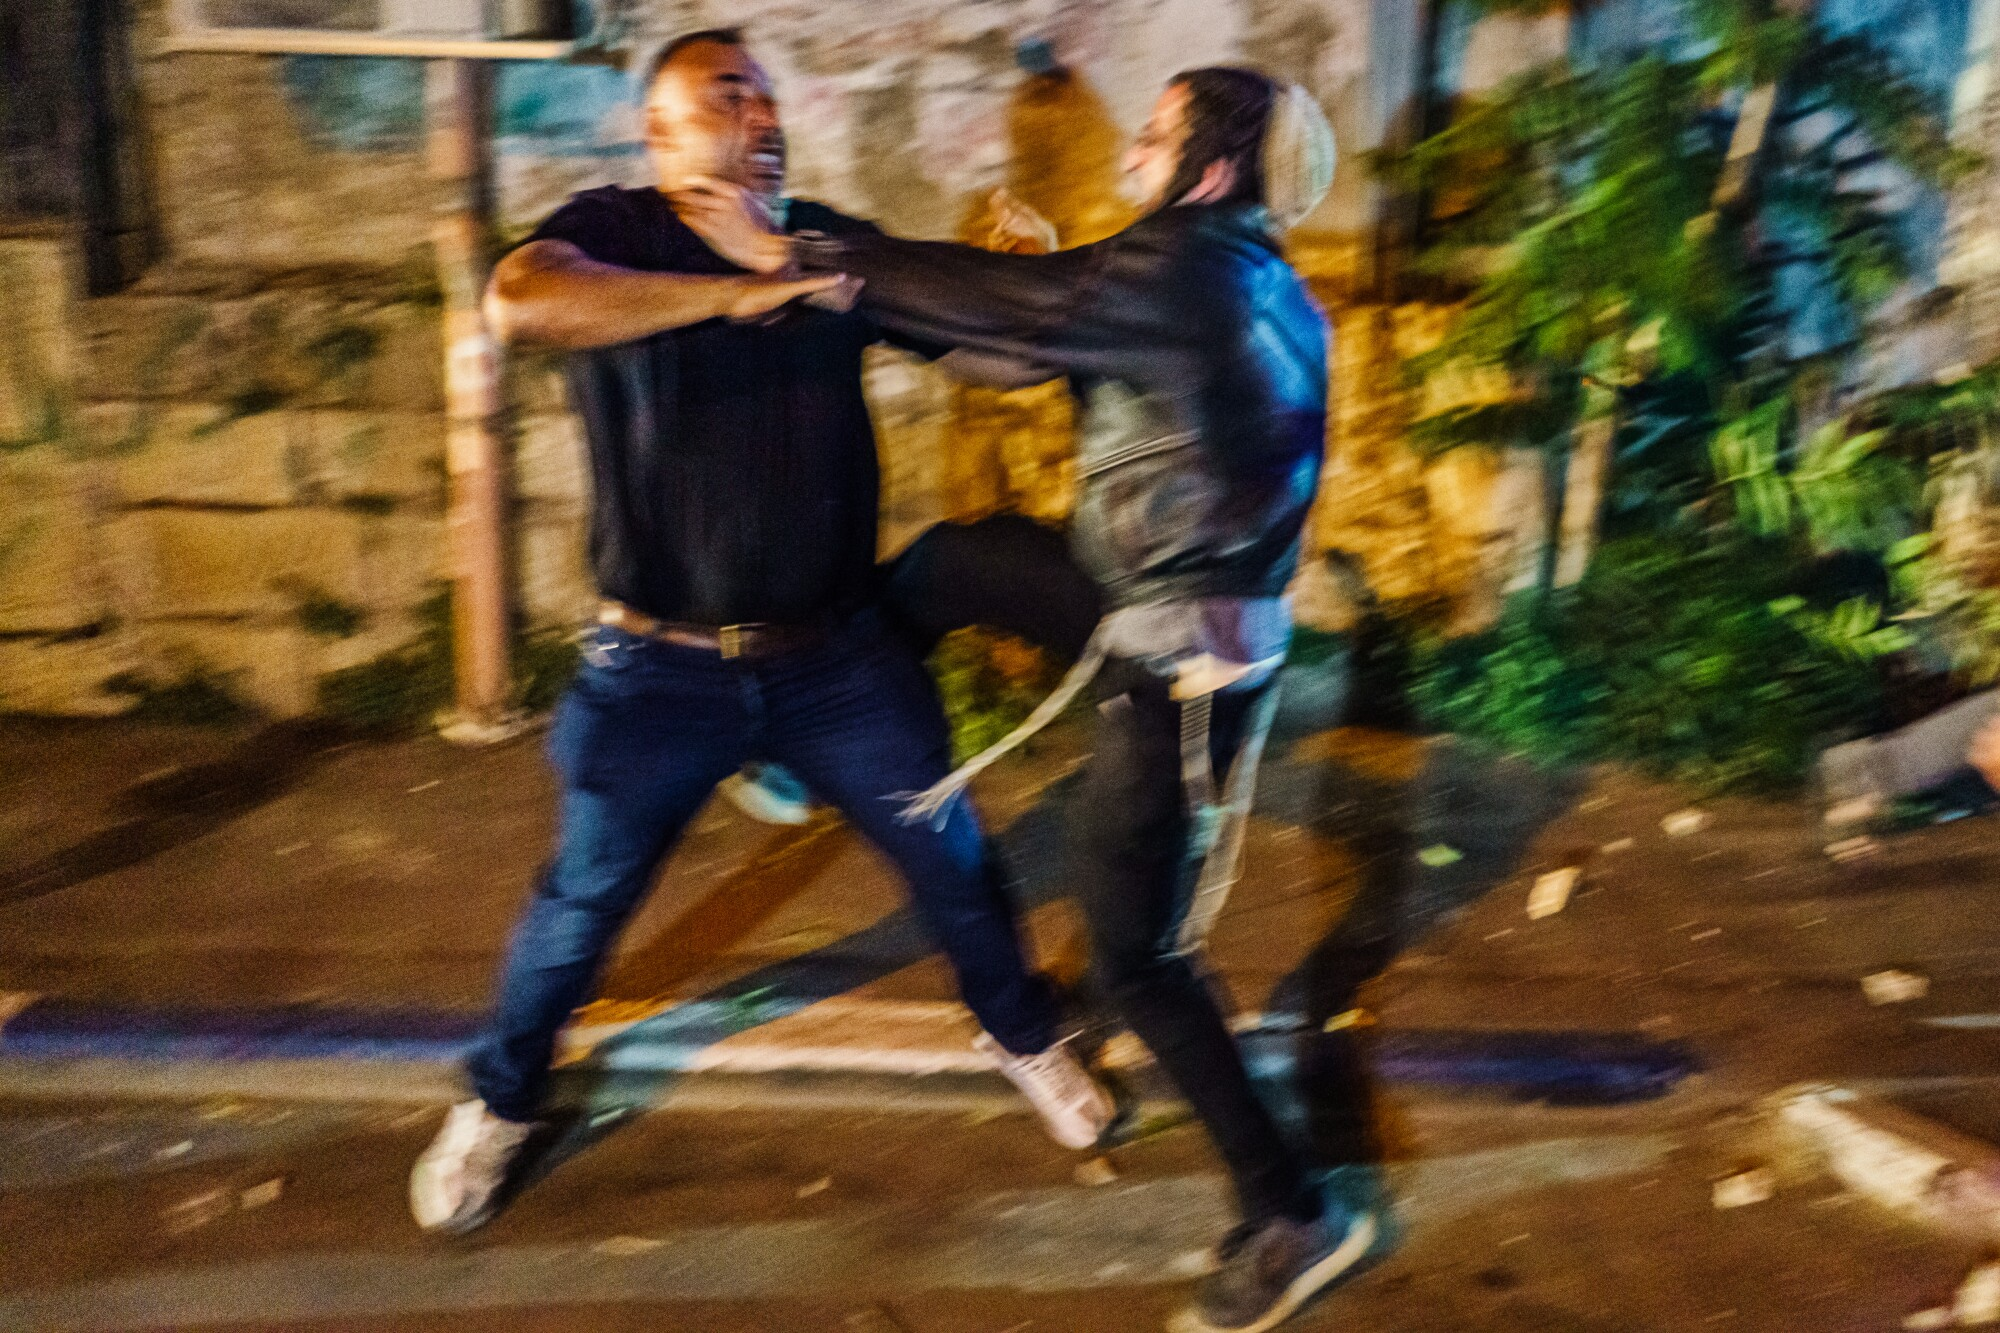 A man puts his hands on another man's neck during a street fight